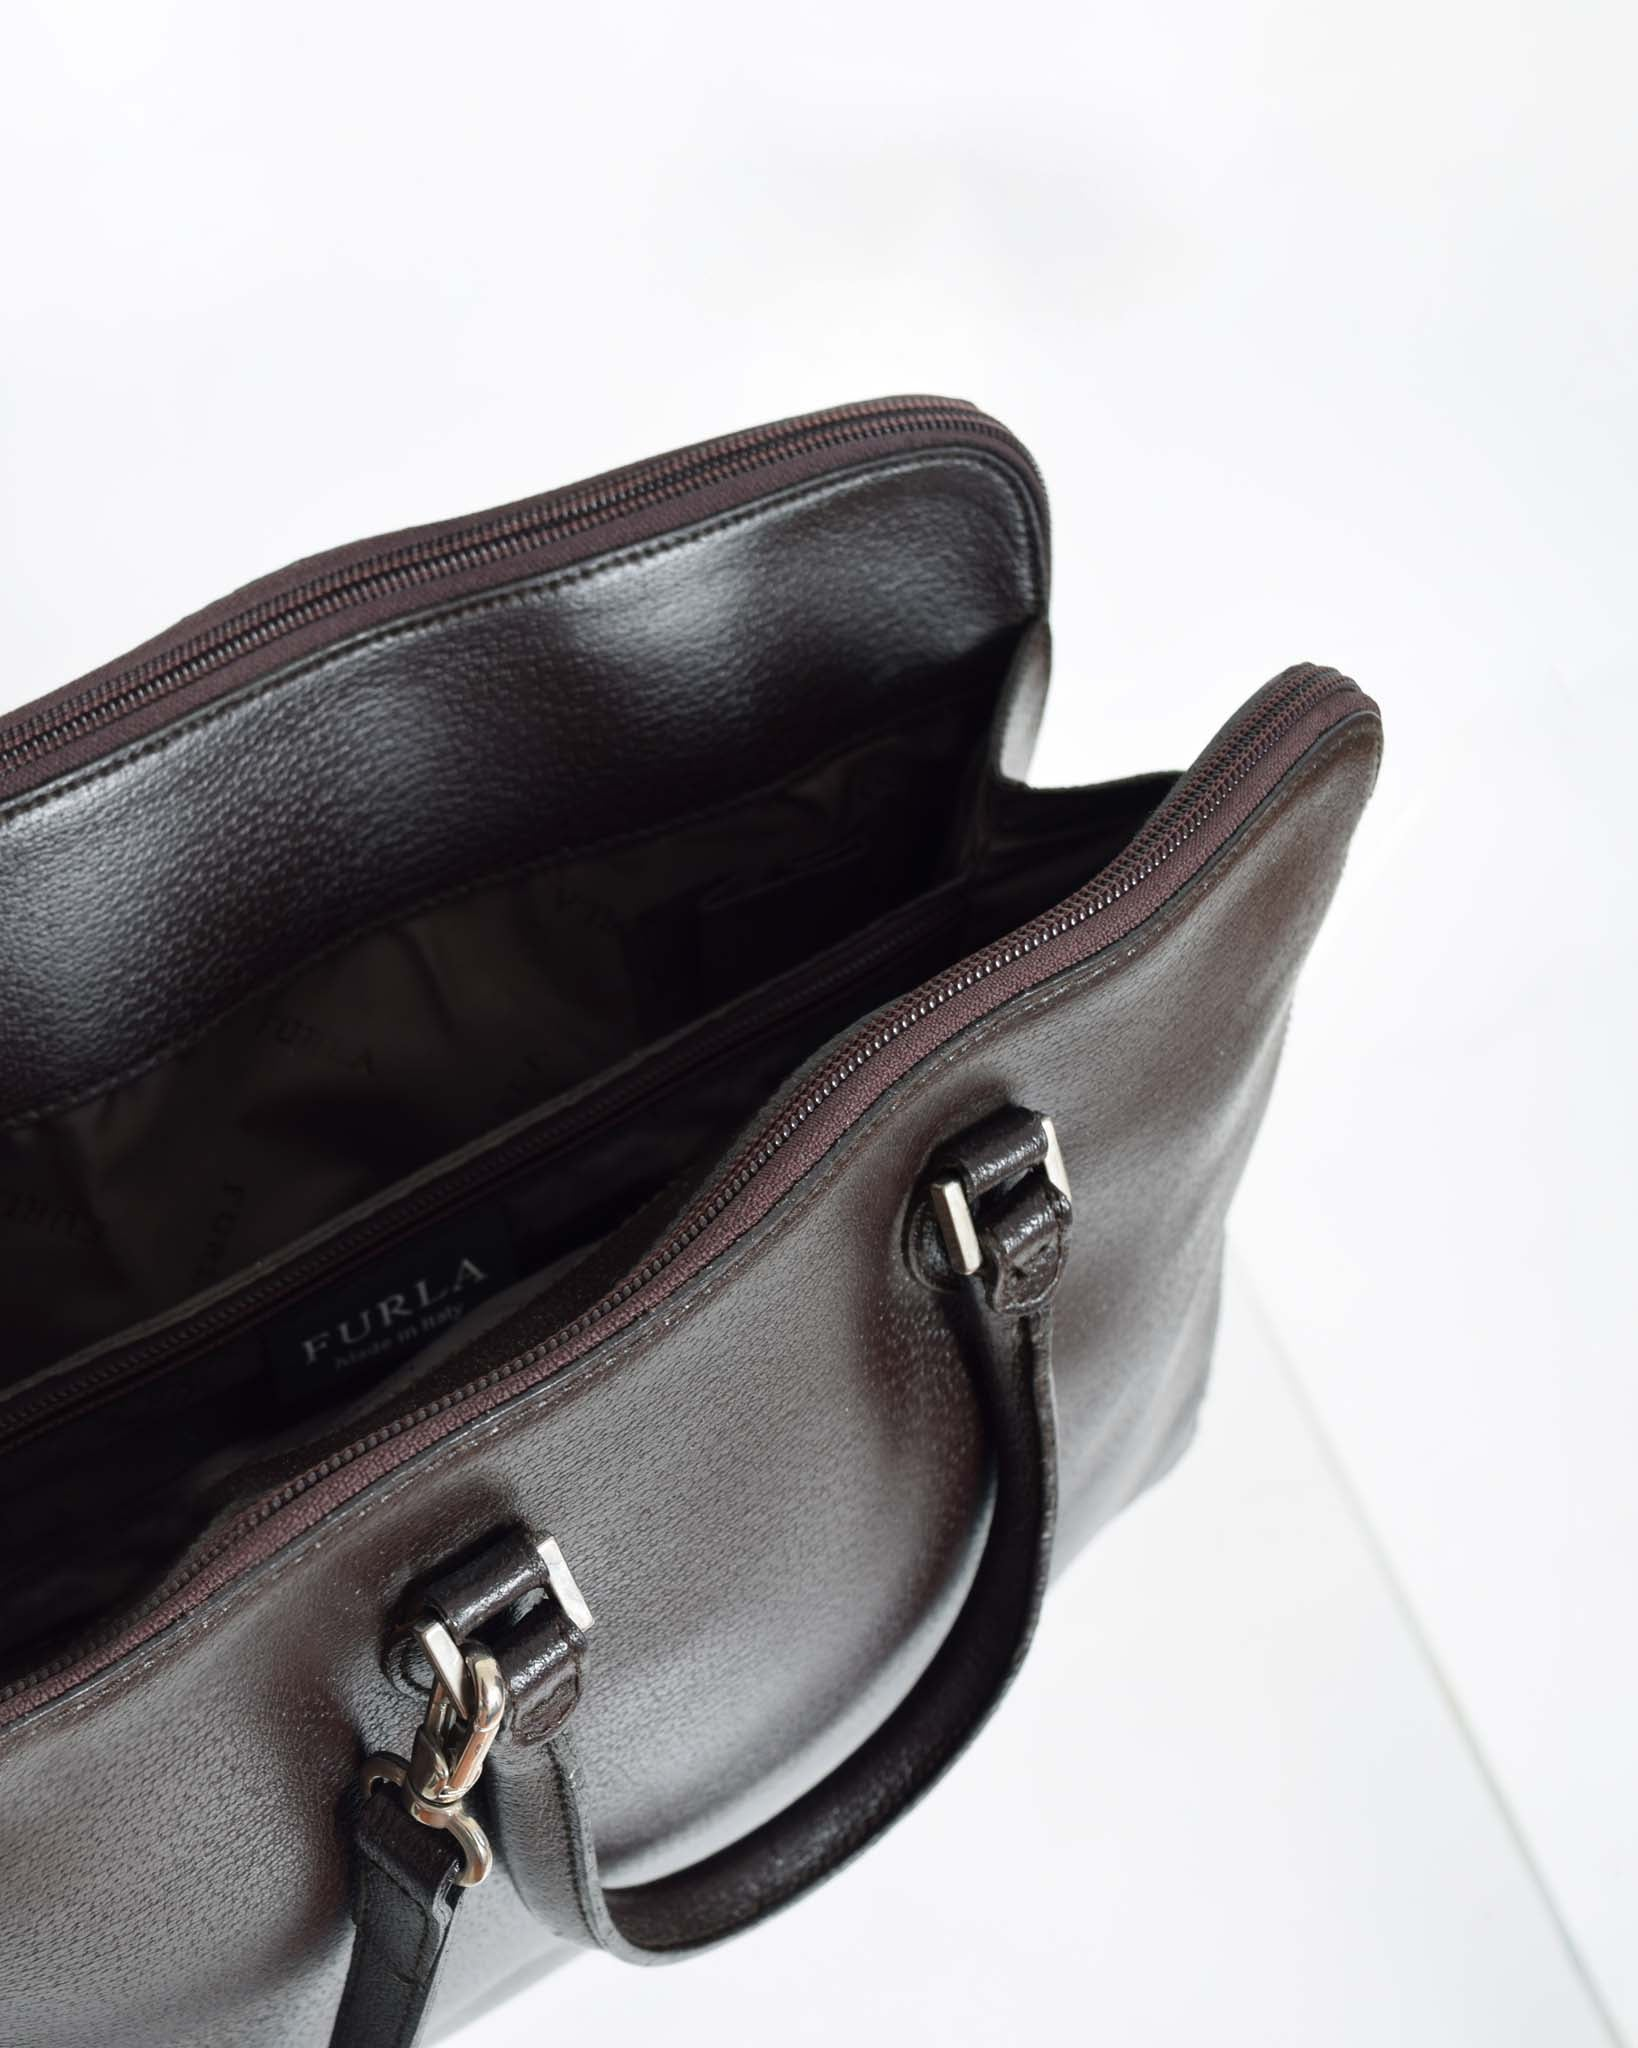 Furla Leather Satchel Bag